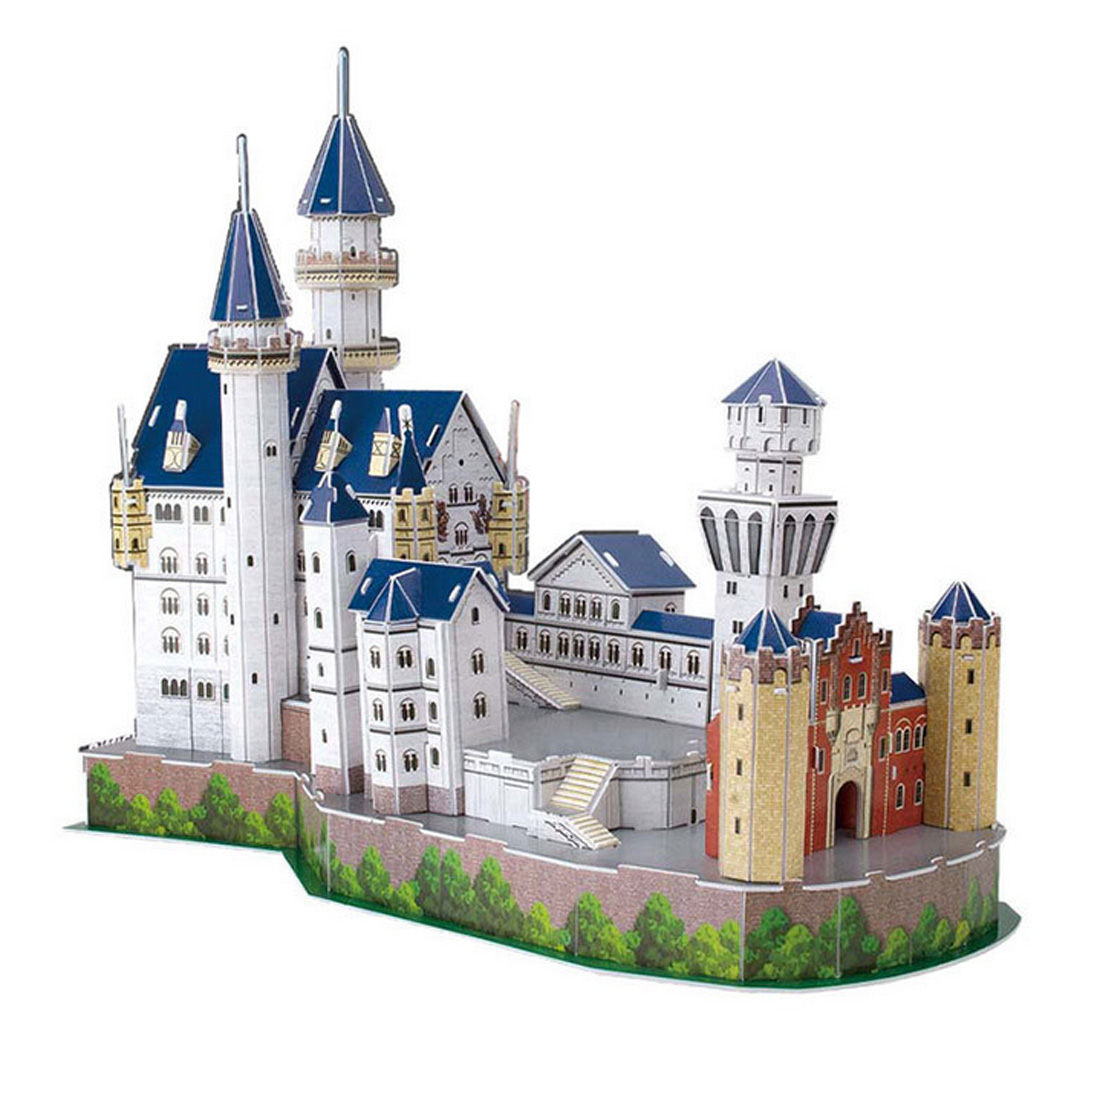 3D Ravensburger Puzzle New Swan Stone Castle Building Model Kit Jigsaw Games(China (Mainland))